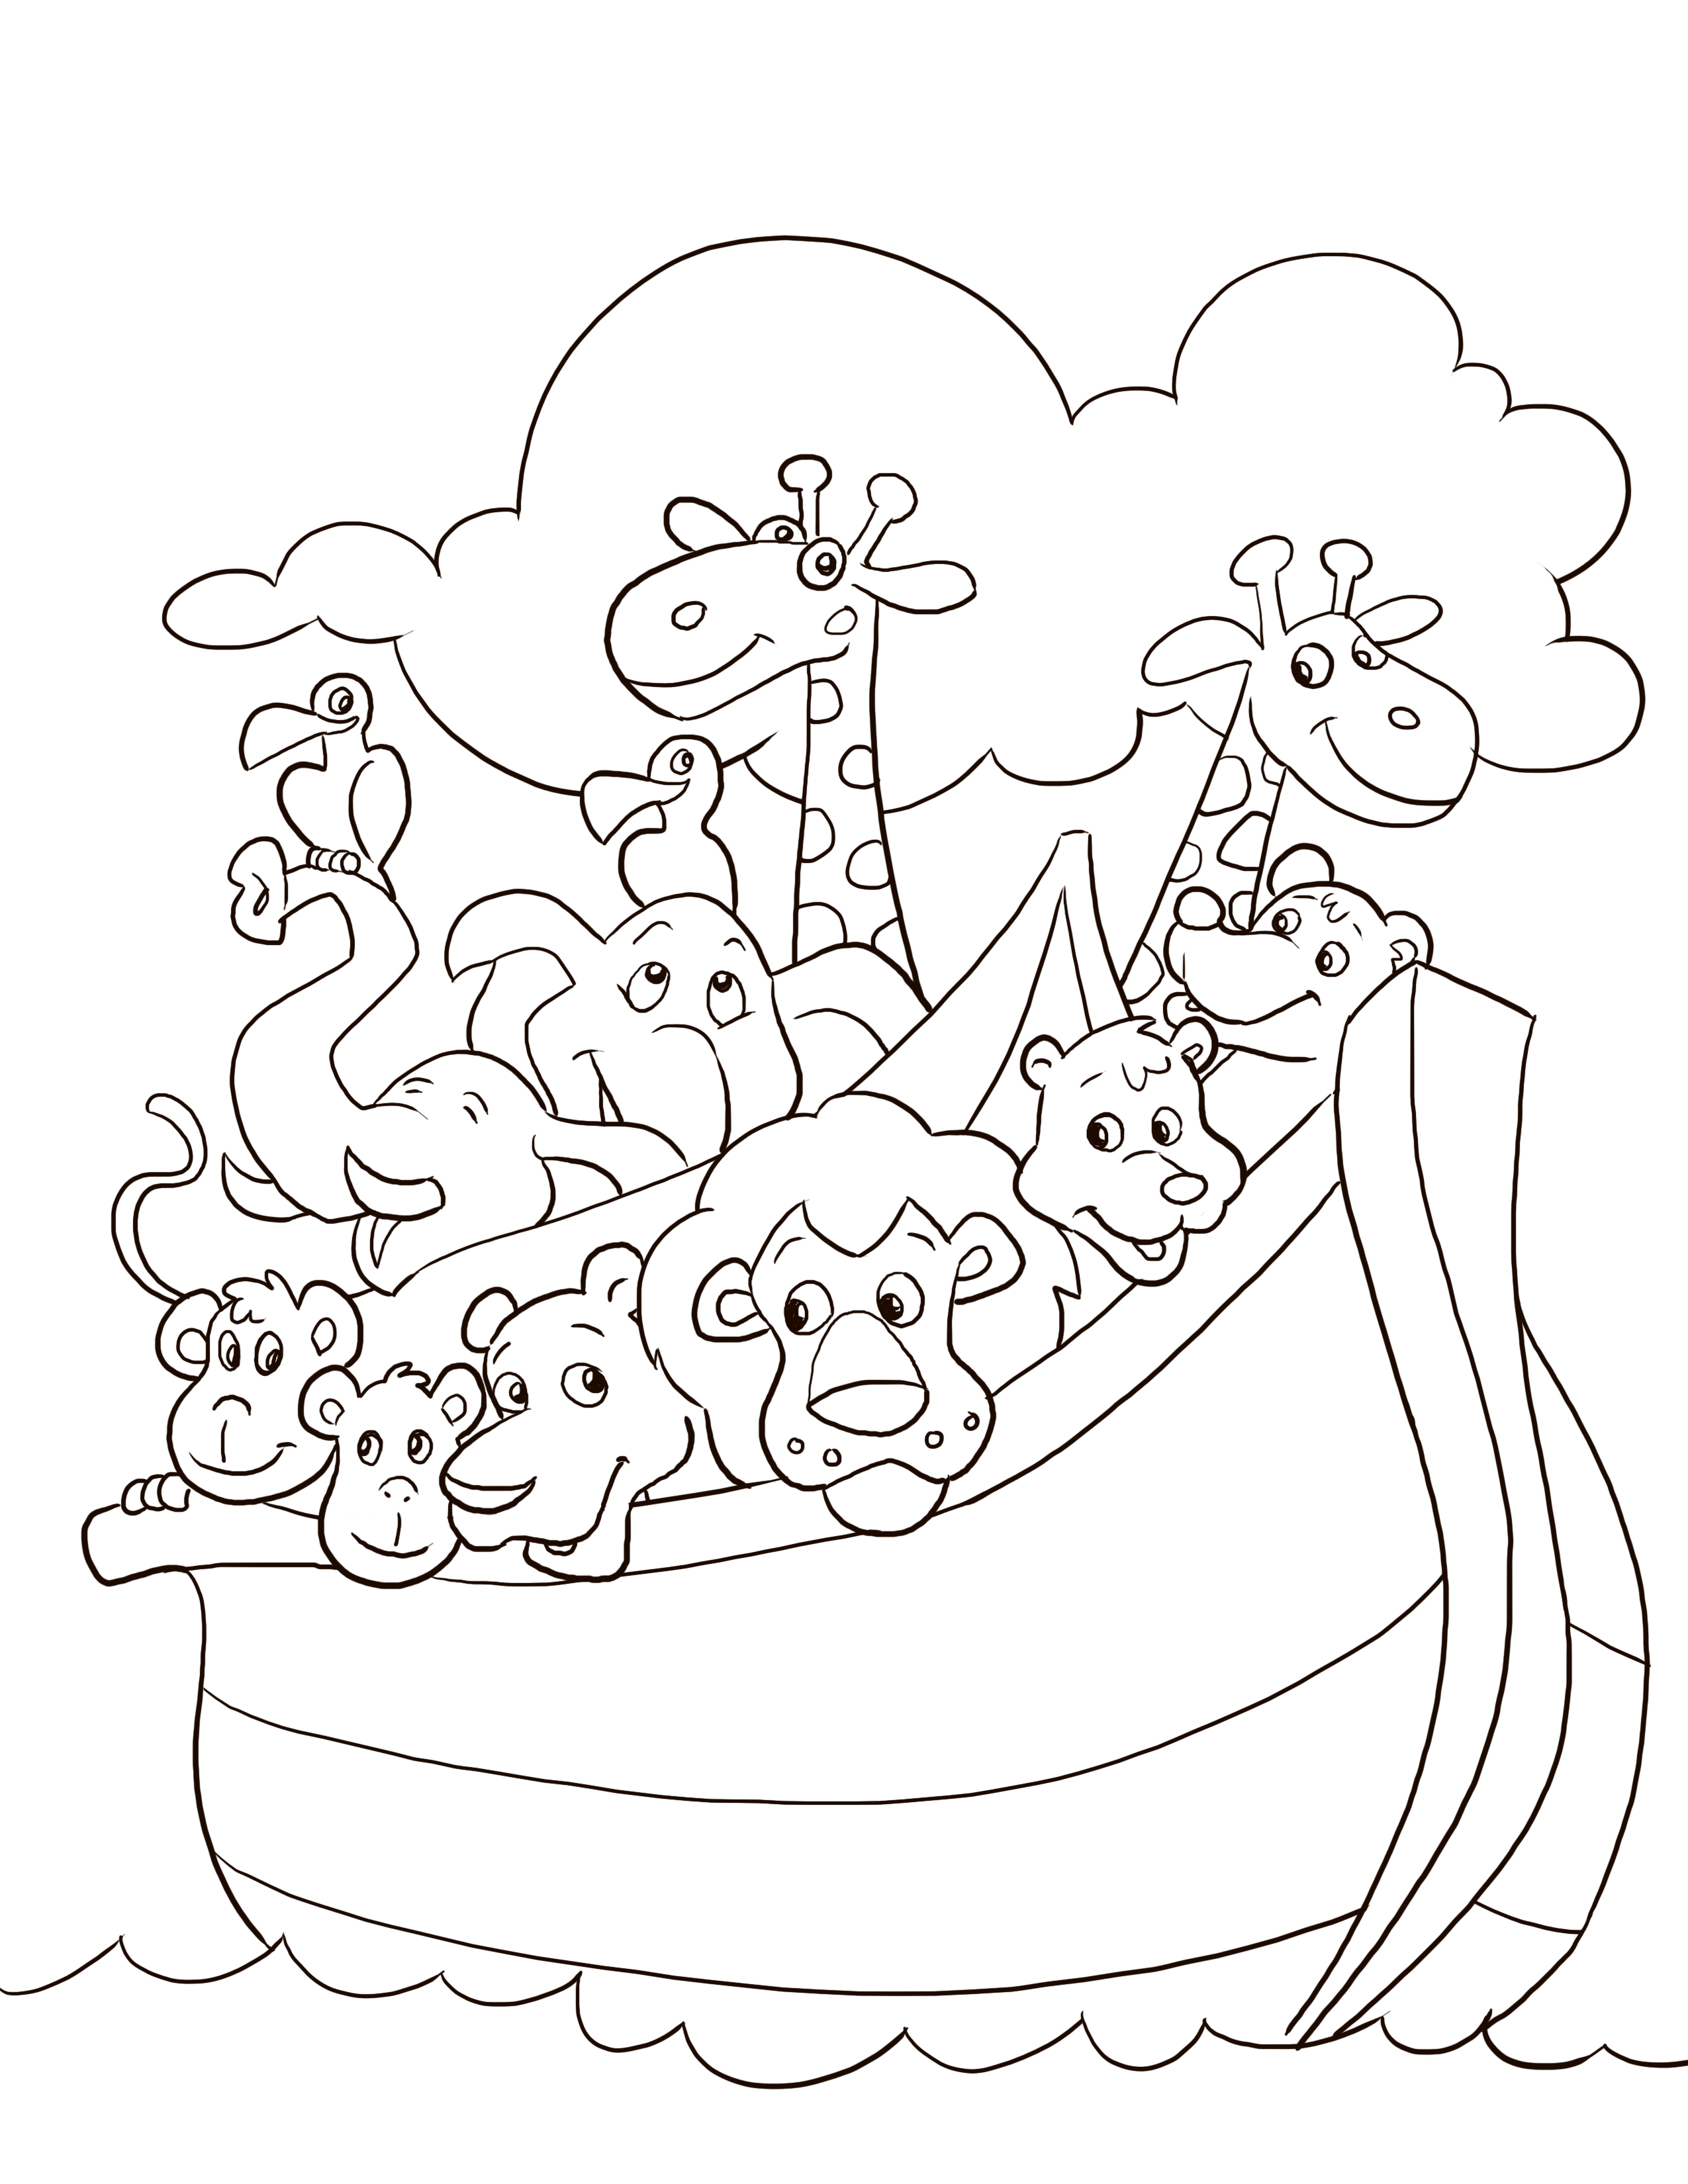 Bible Coloring Page Bible Coloring Pages About forgiveness Bible ...